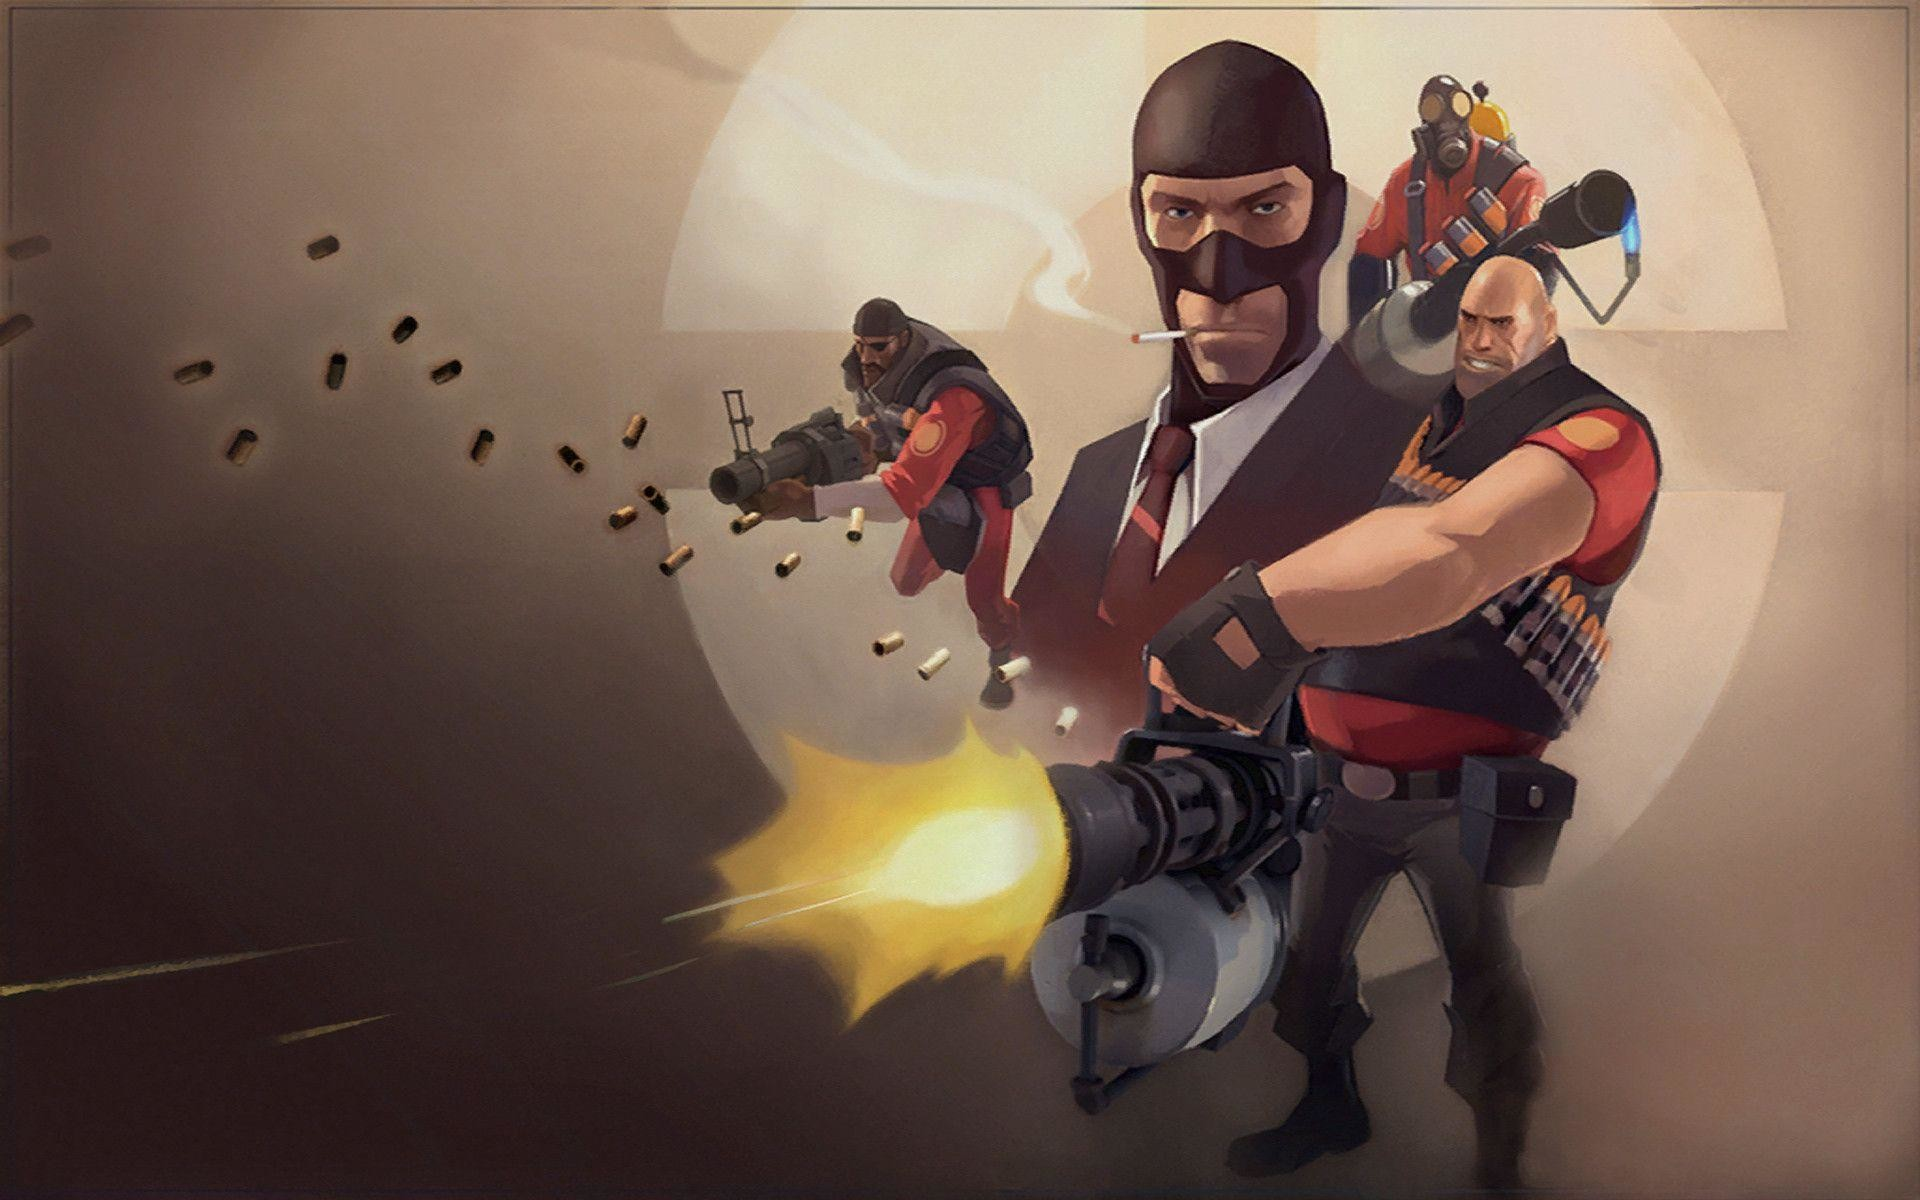 1920x1200 Most Downloaded Tf2 Wallpapers - Full HD wallpaper search